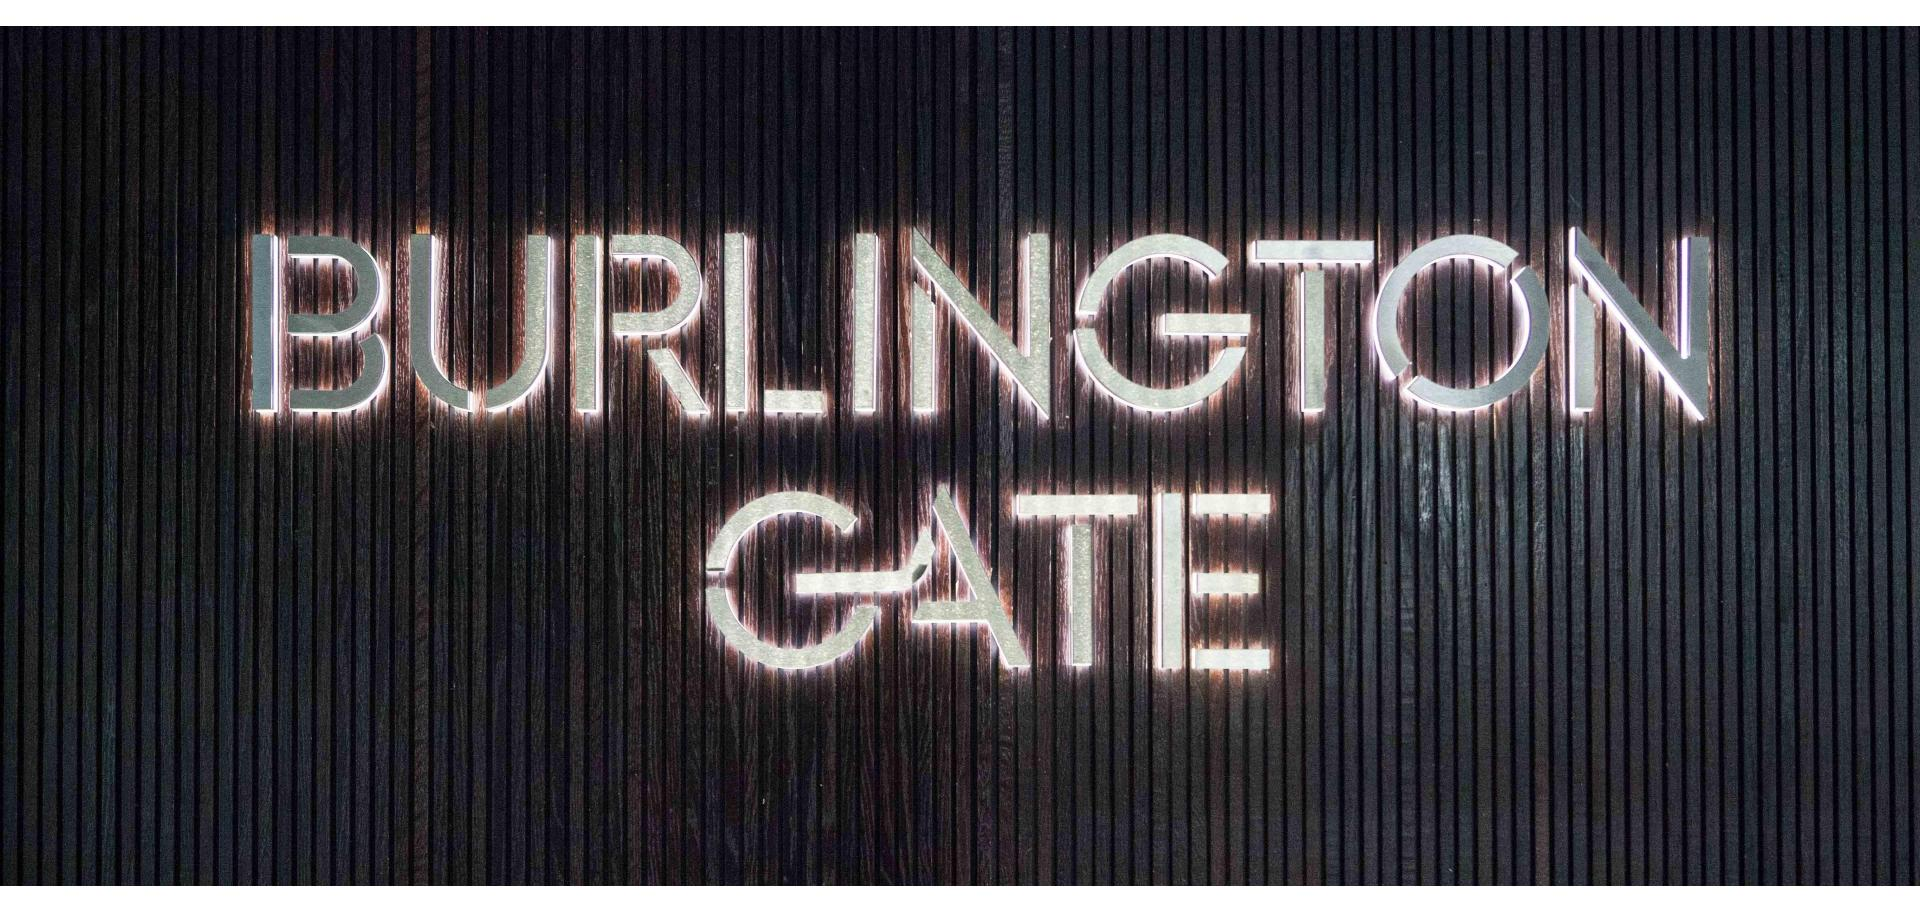 burlington-gate